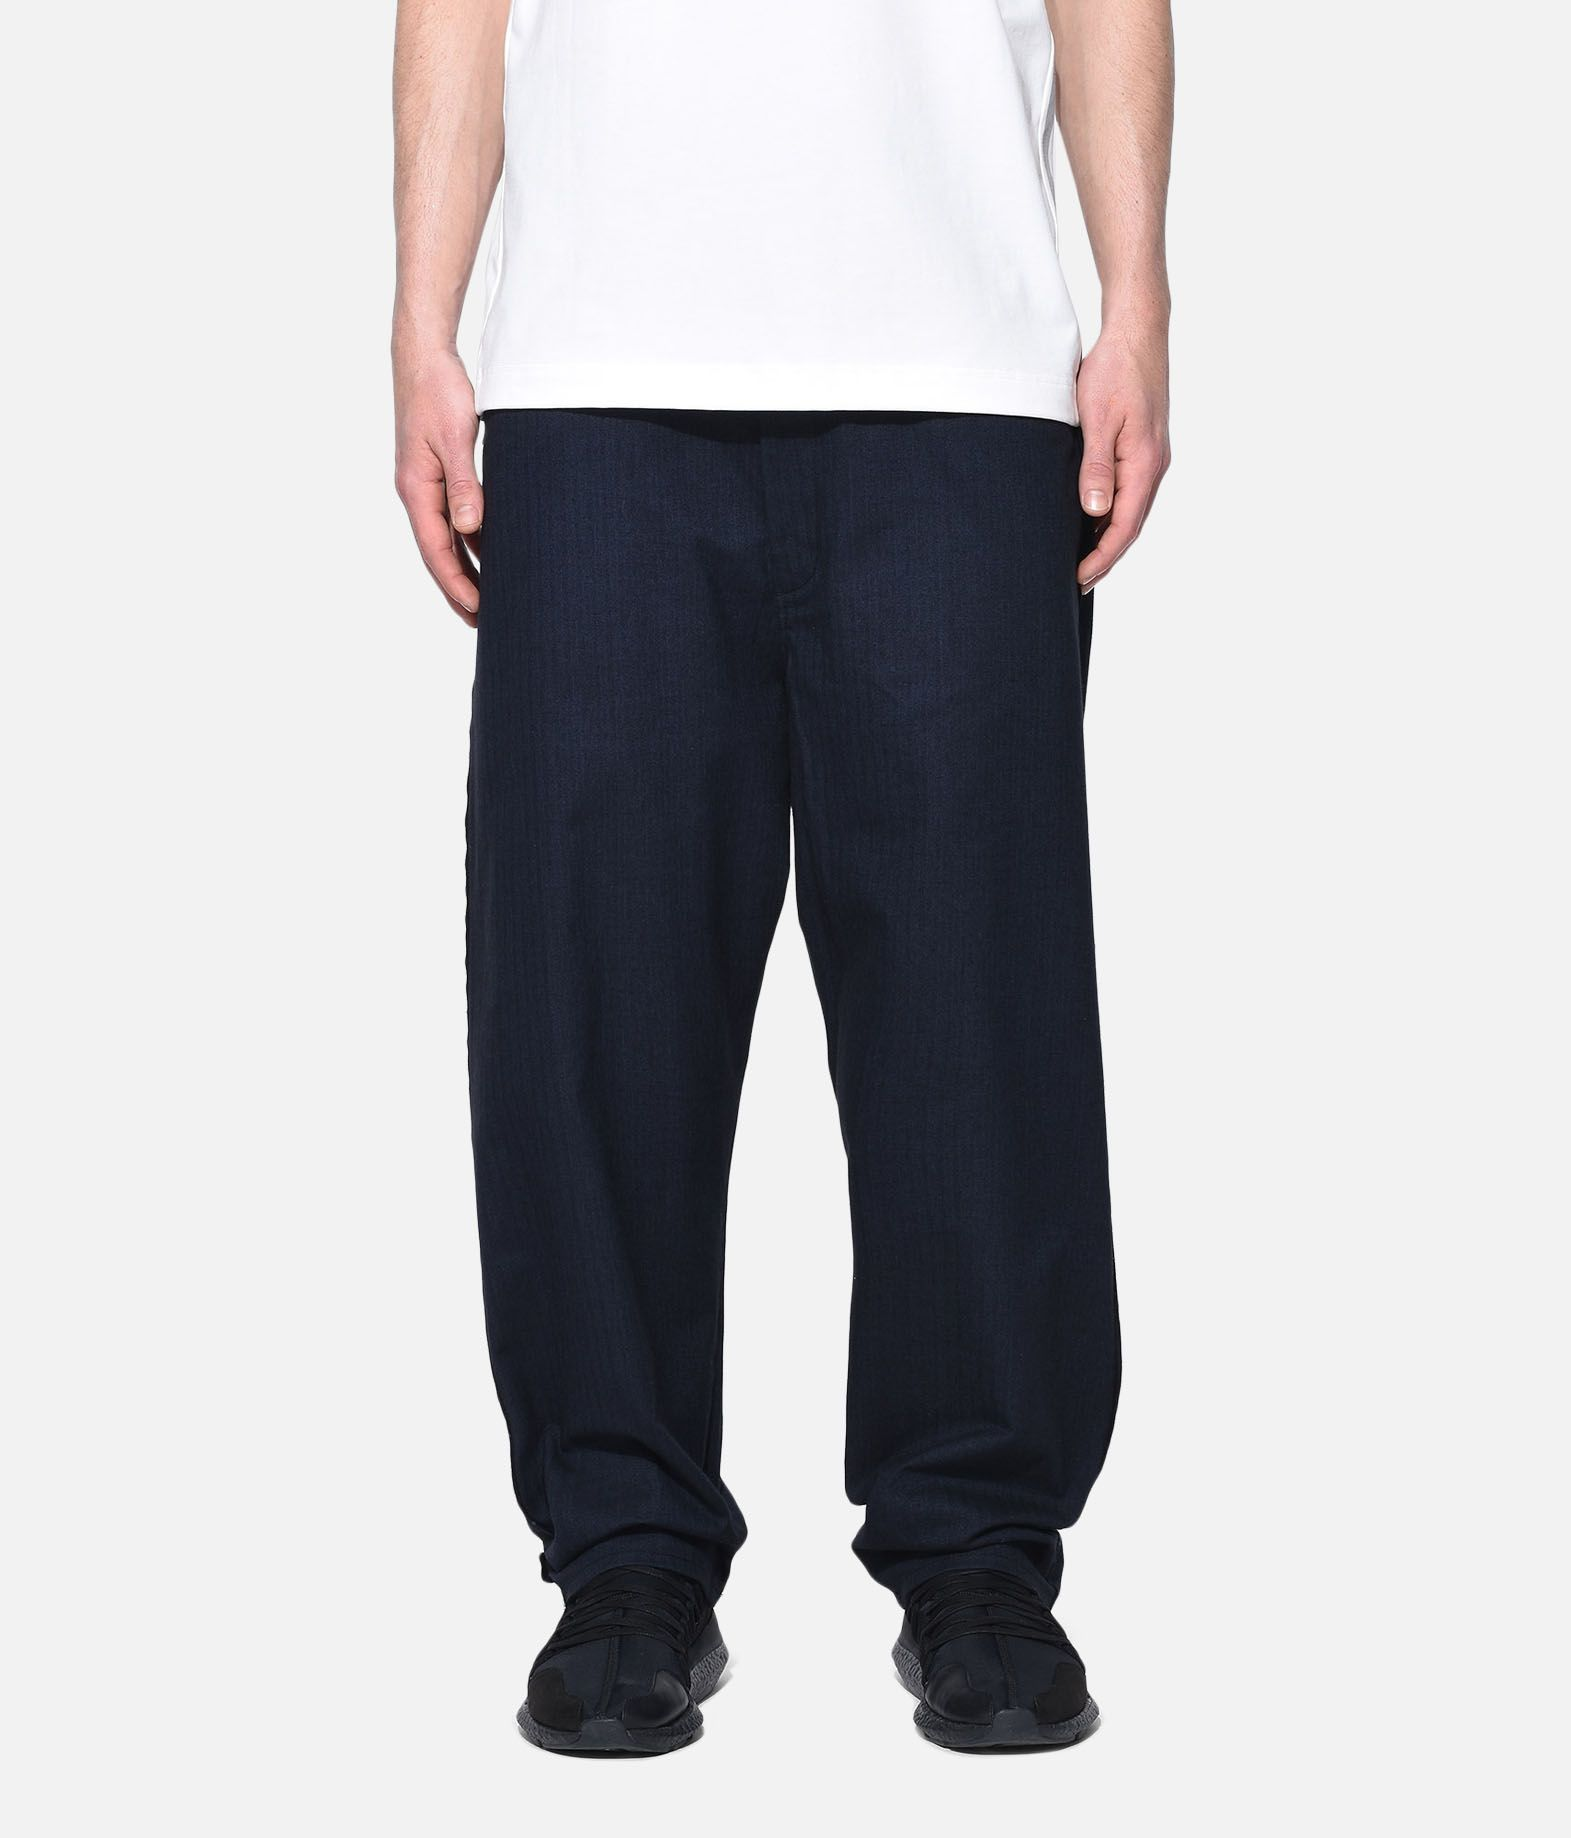 Y-3 Y-3 Herringbone Tailored Pants Dress pants Man r